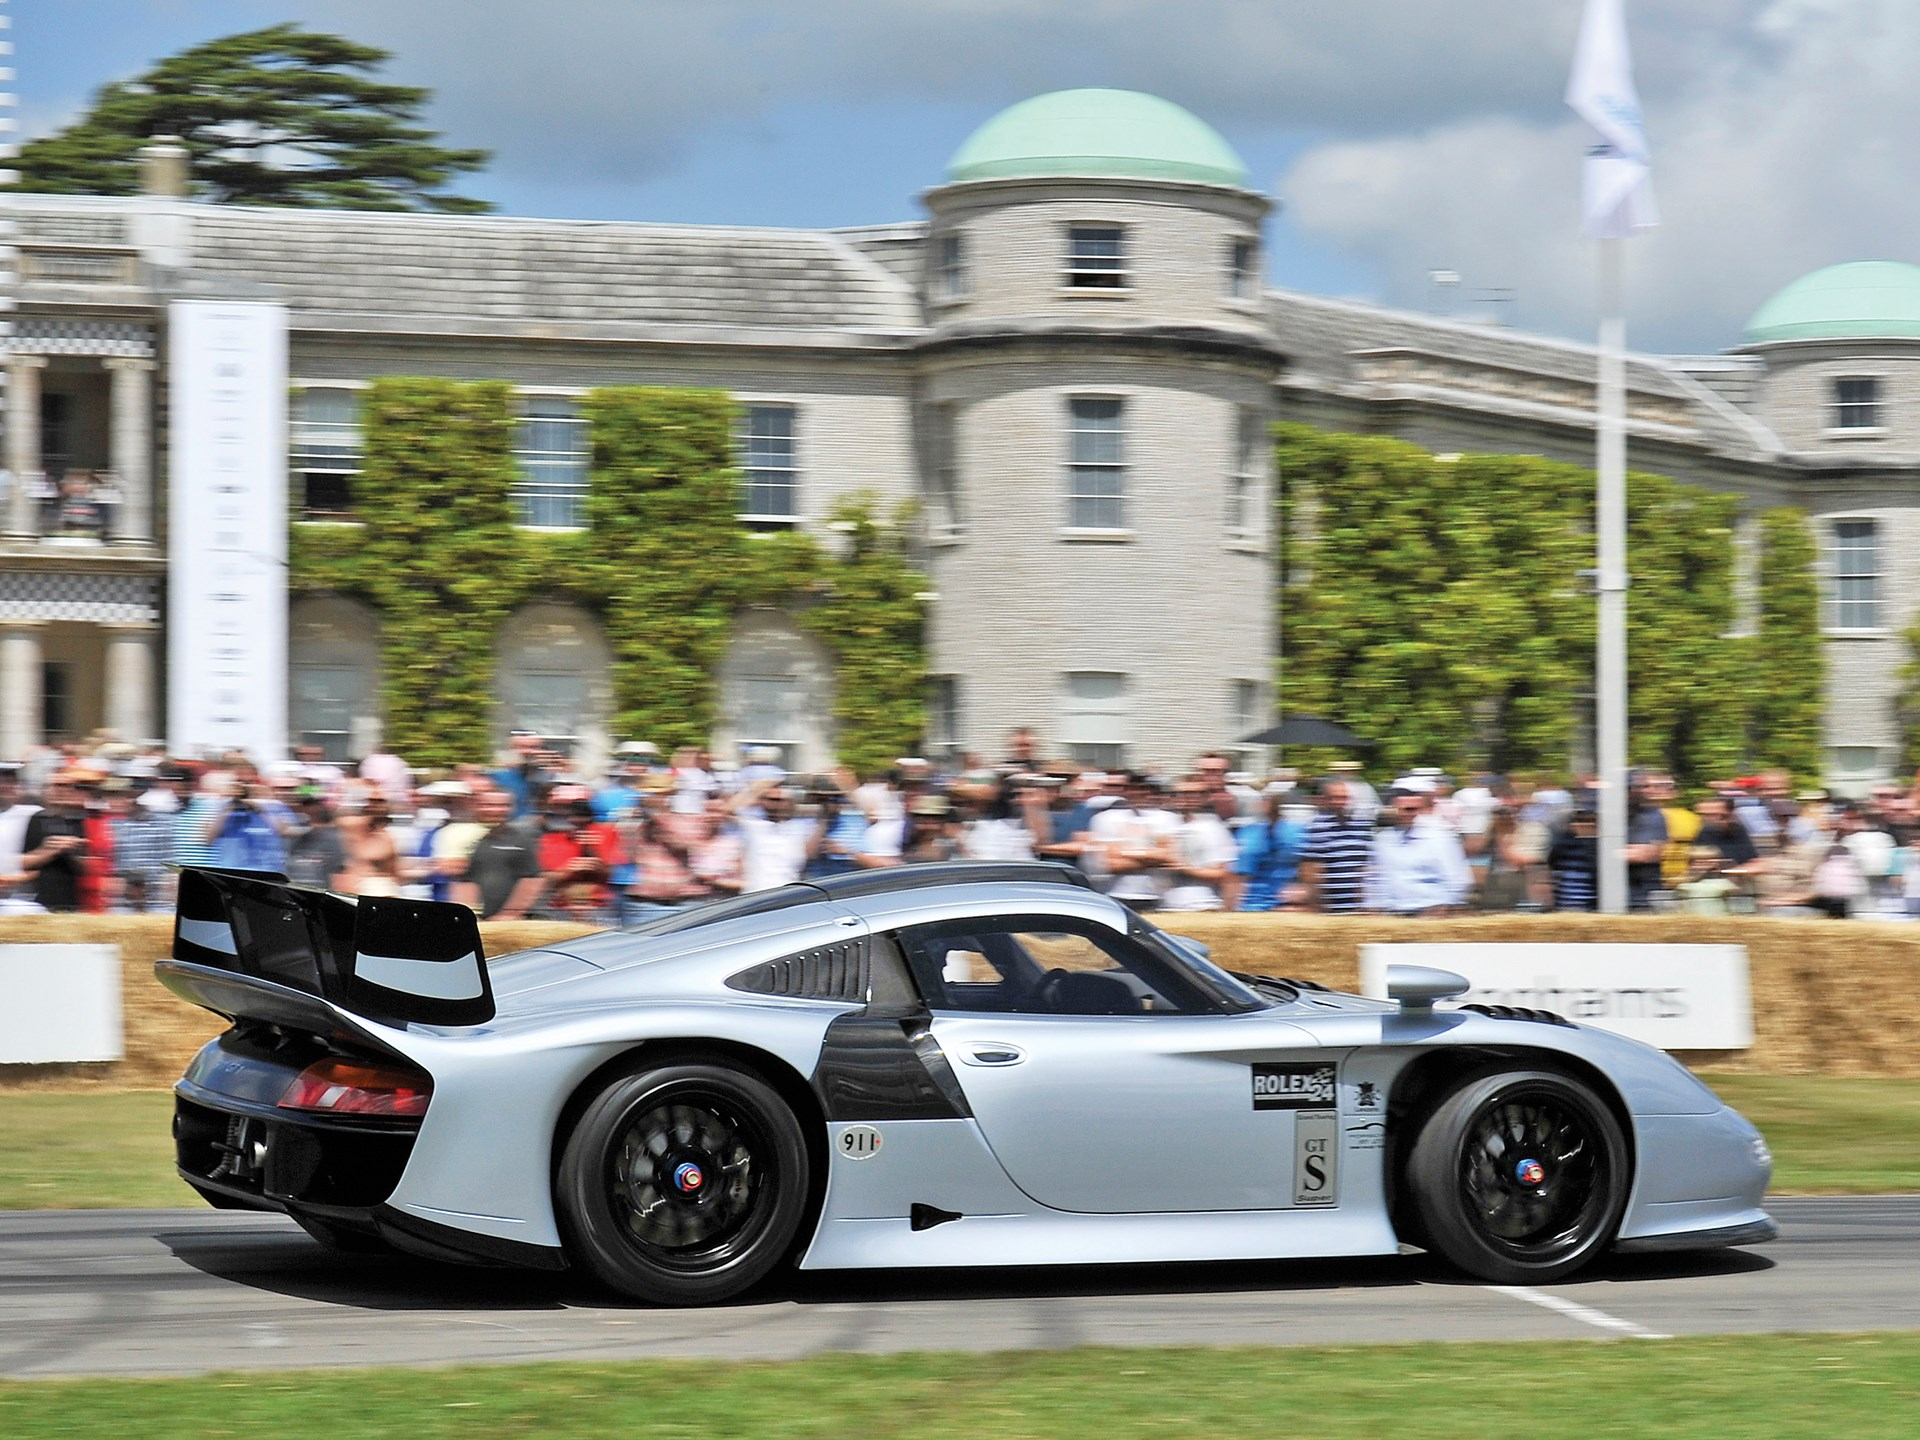 Chassis 993-117 at the Goodwood Festival of Speed 2015.